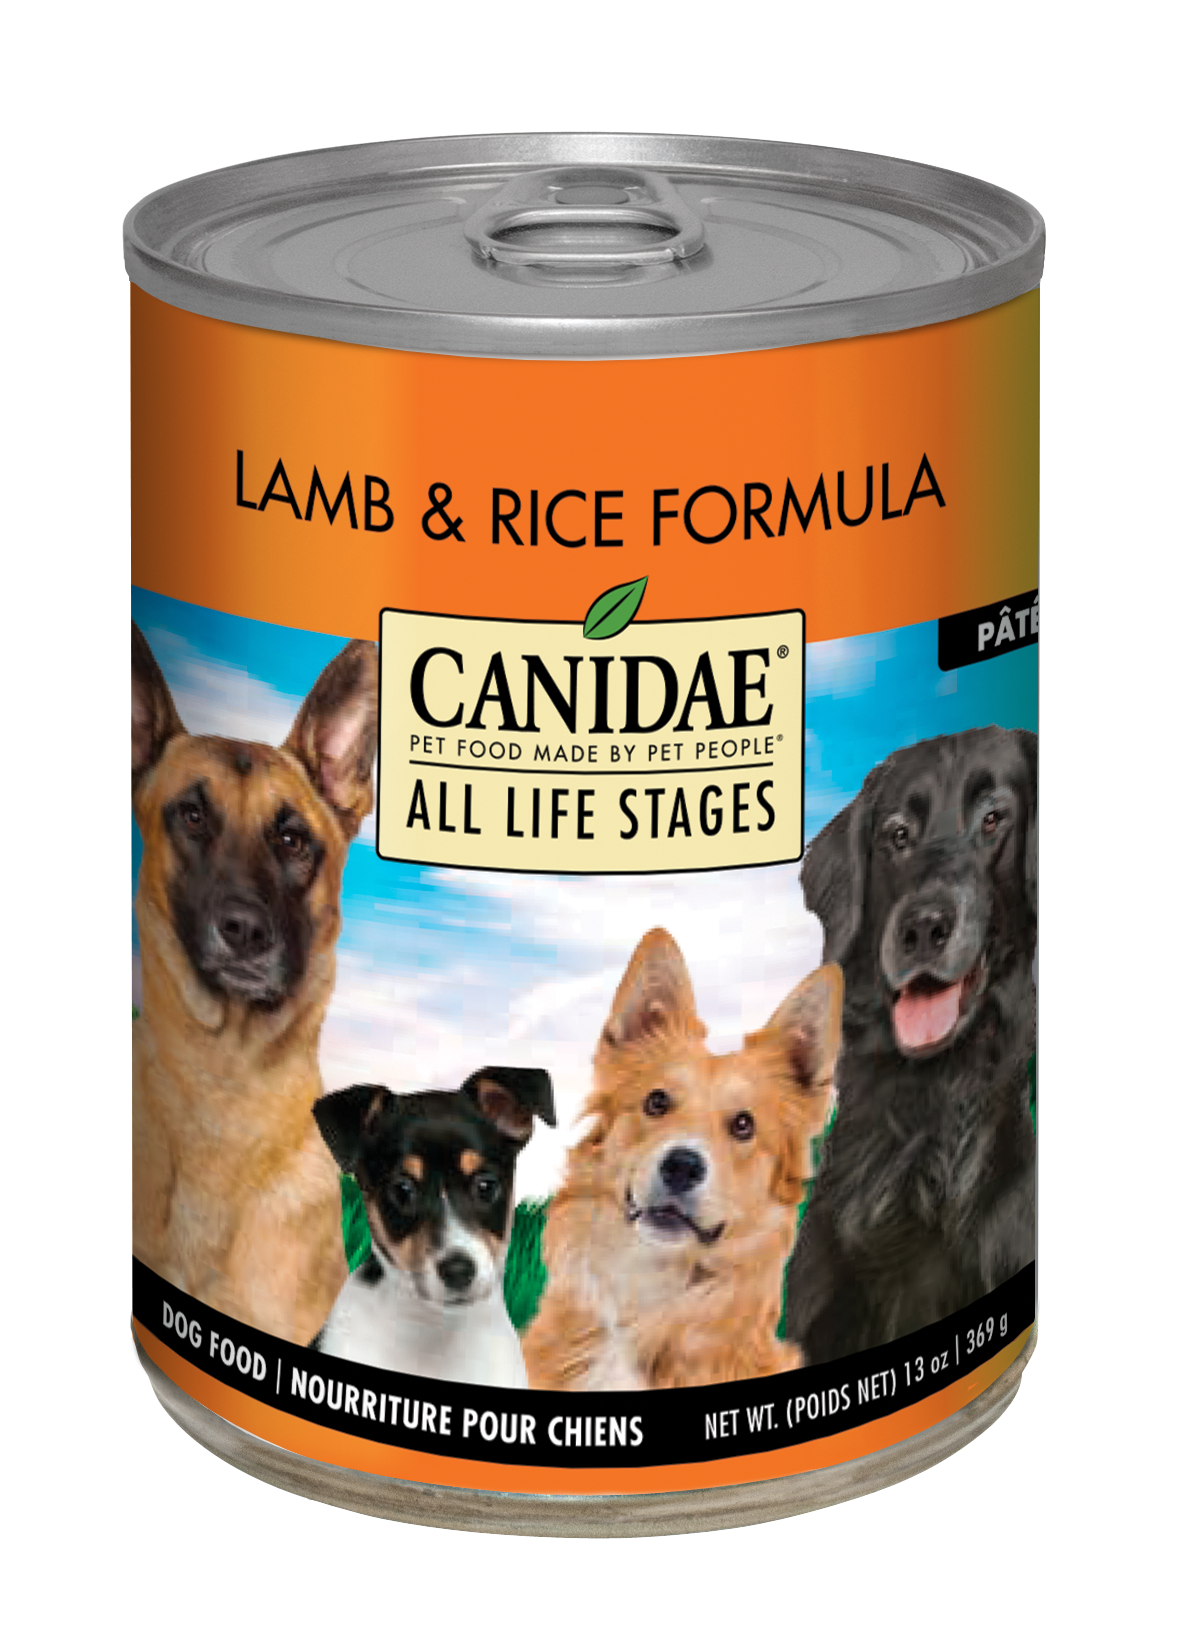 Canidae Life Stages Lamb & Rice Formula Canned Dog Food Image